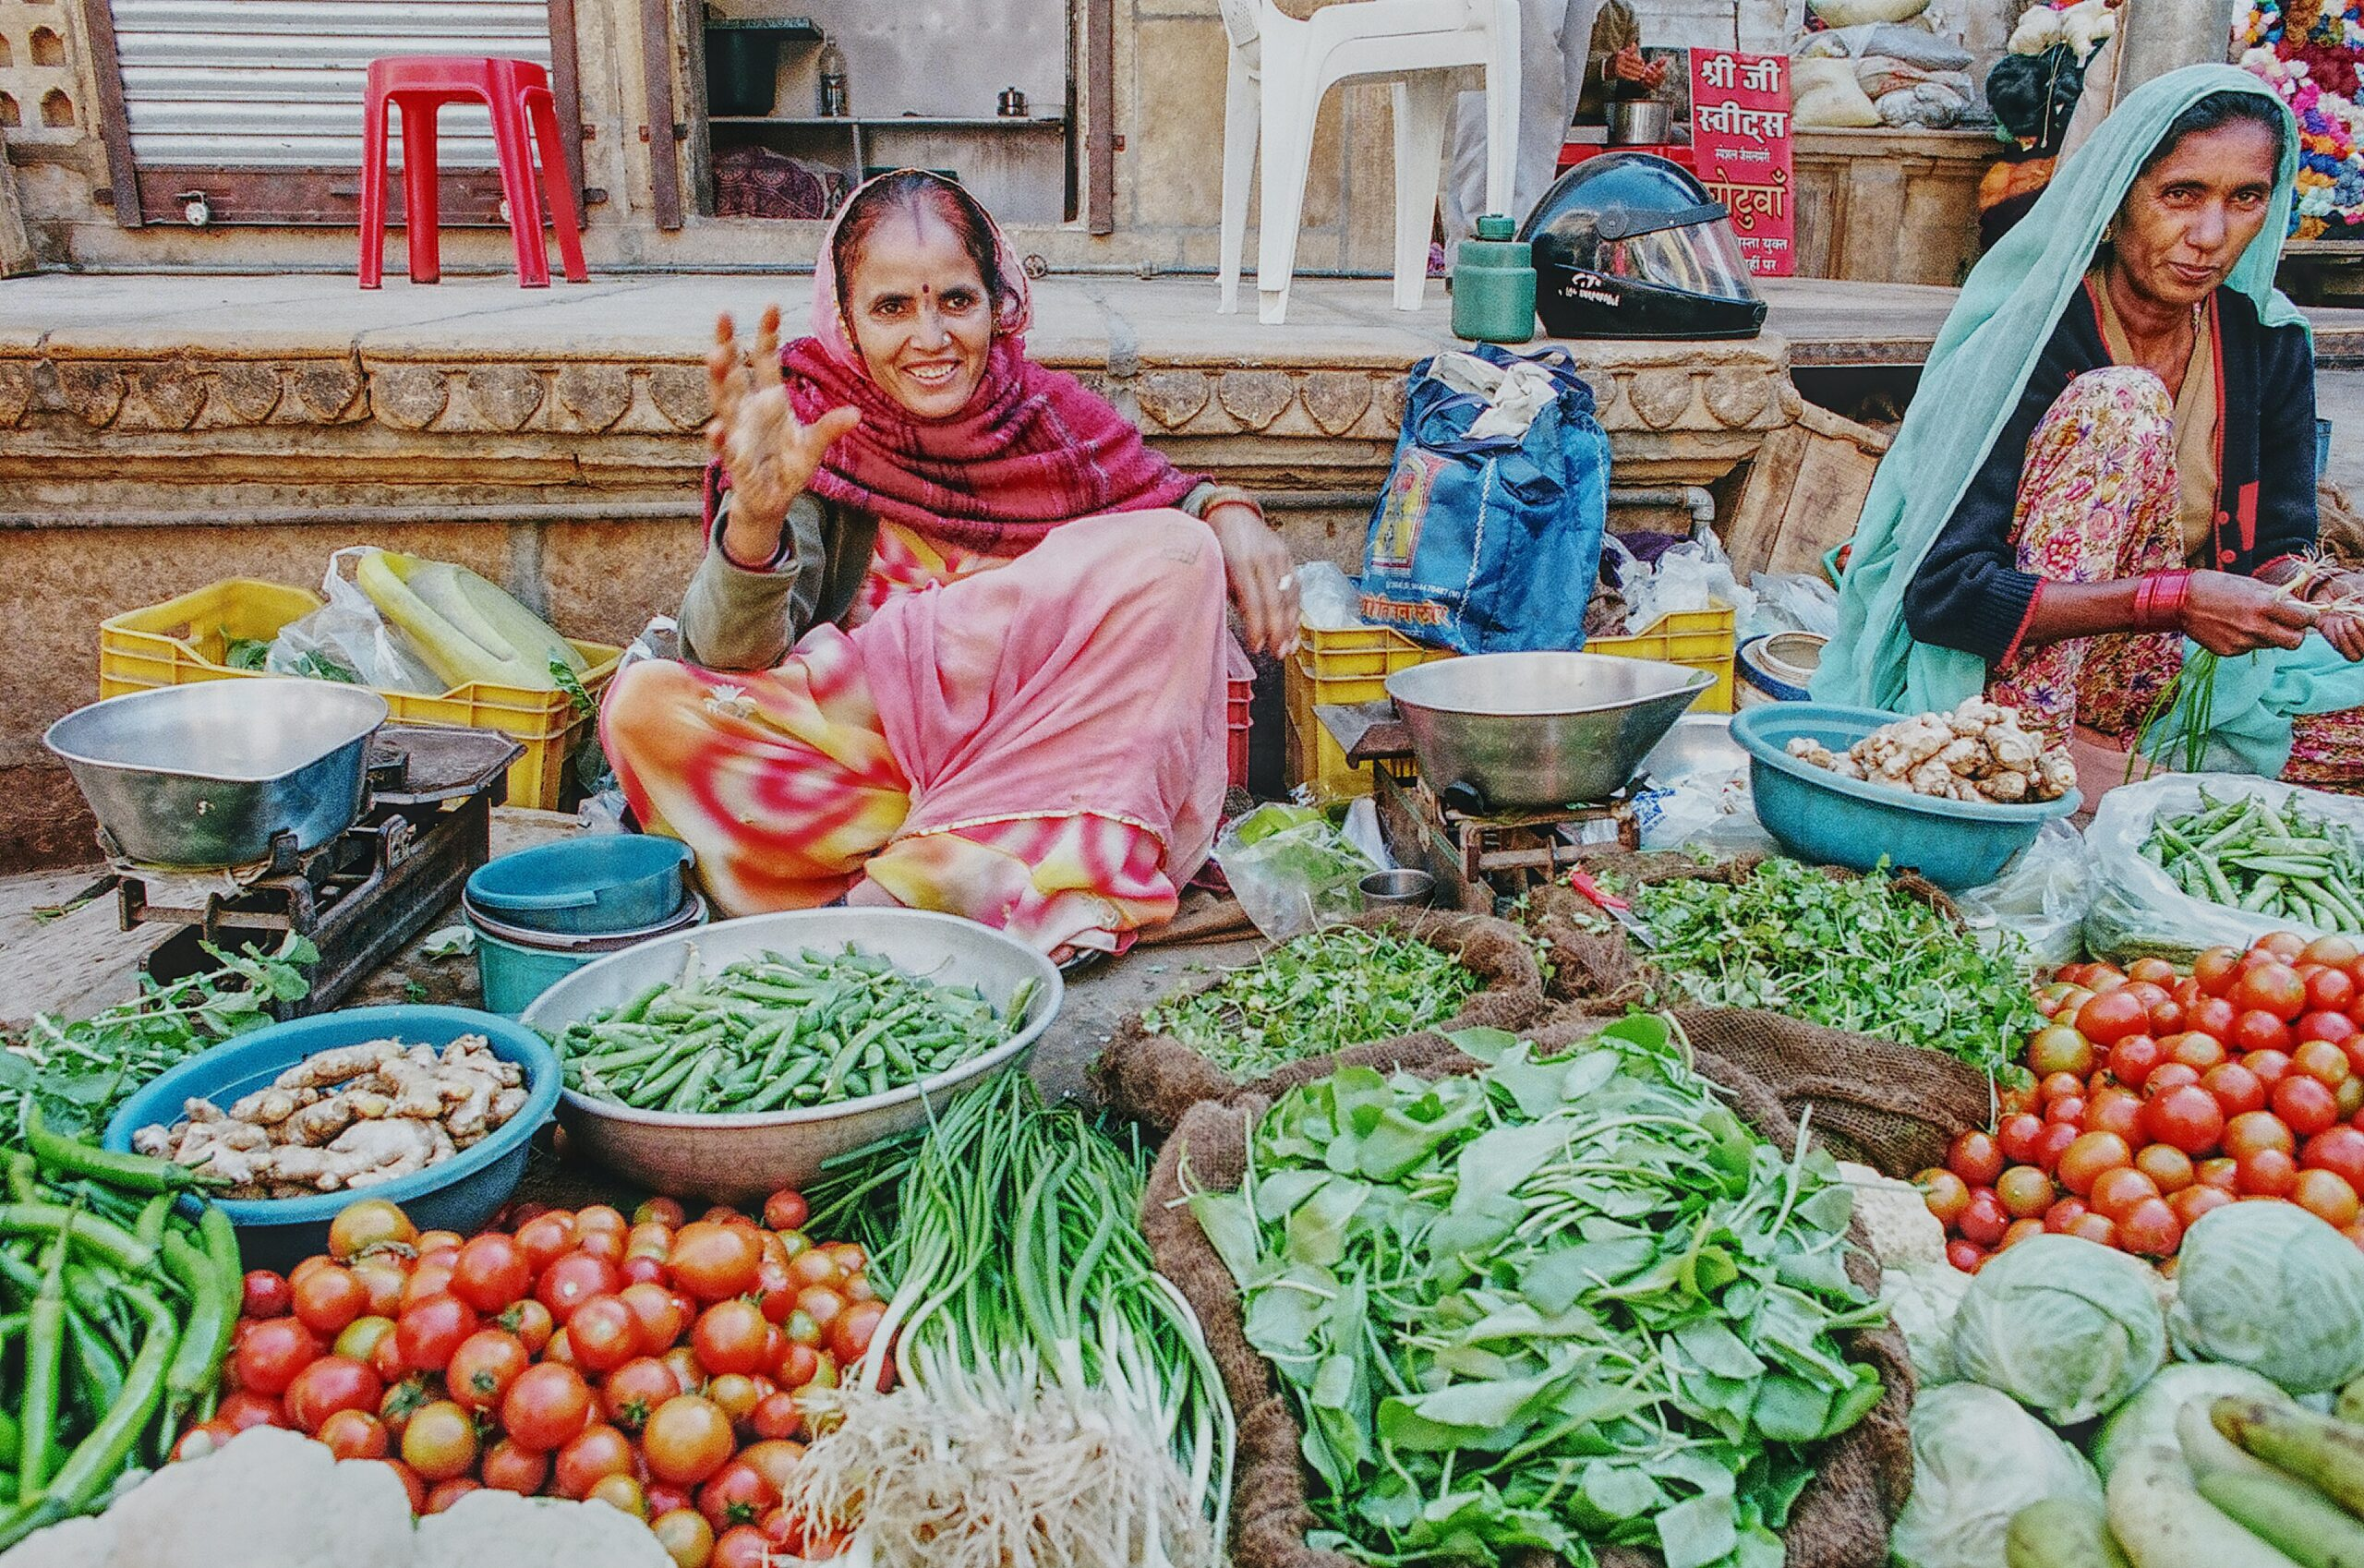 Indian women selling produce at open-air market